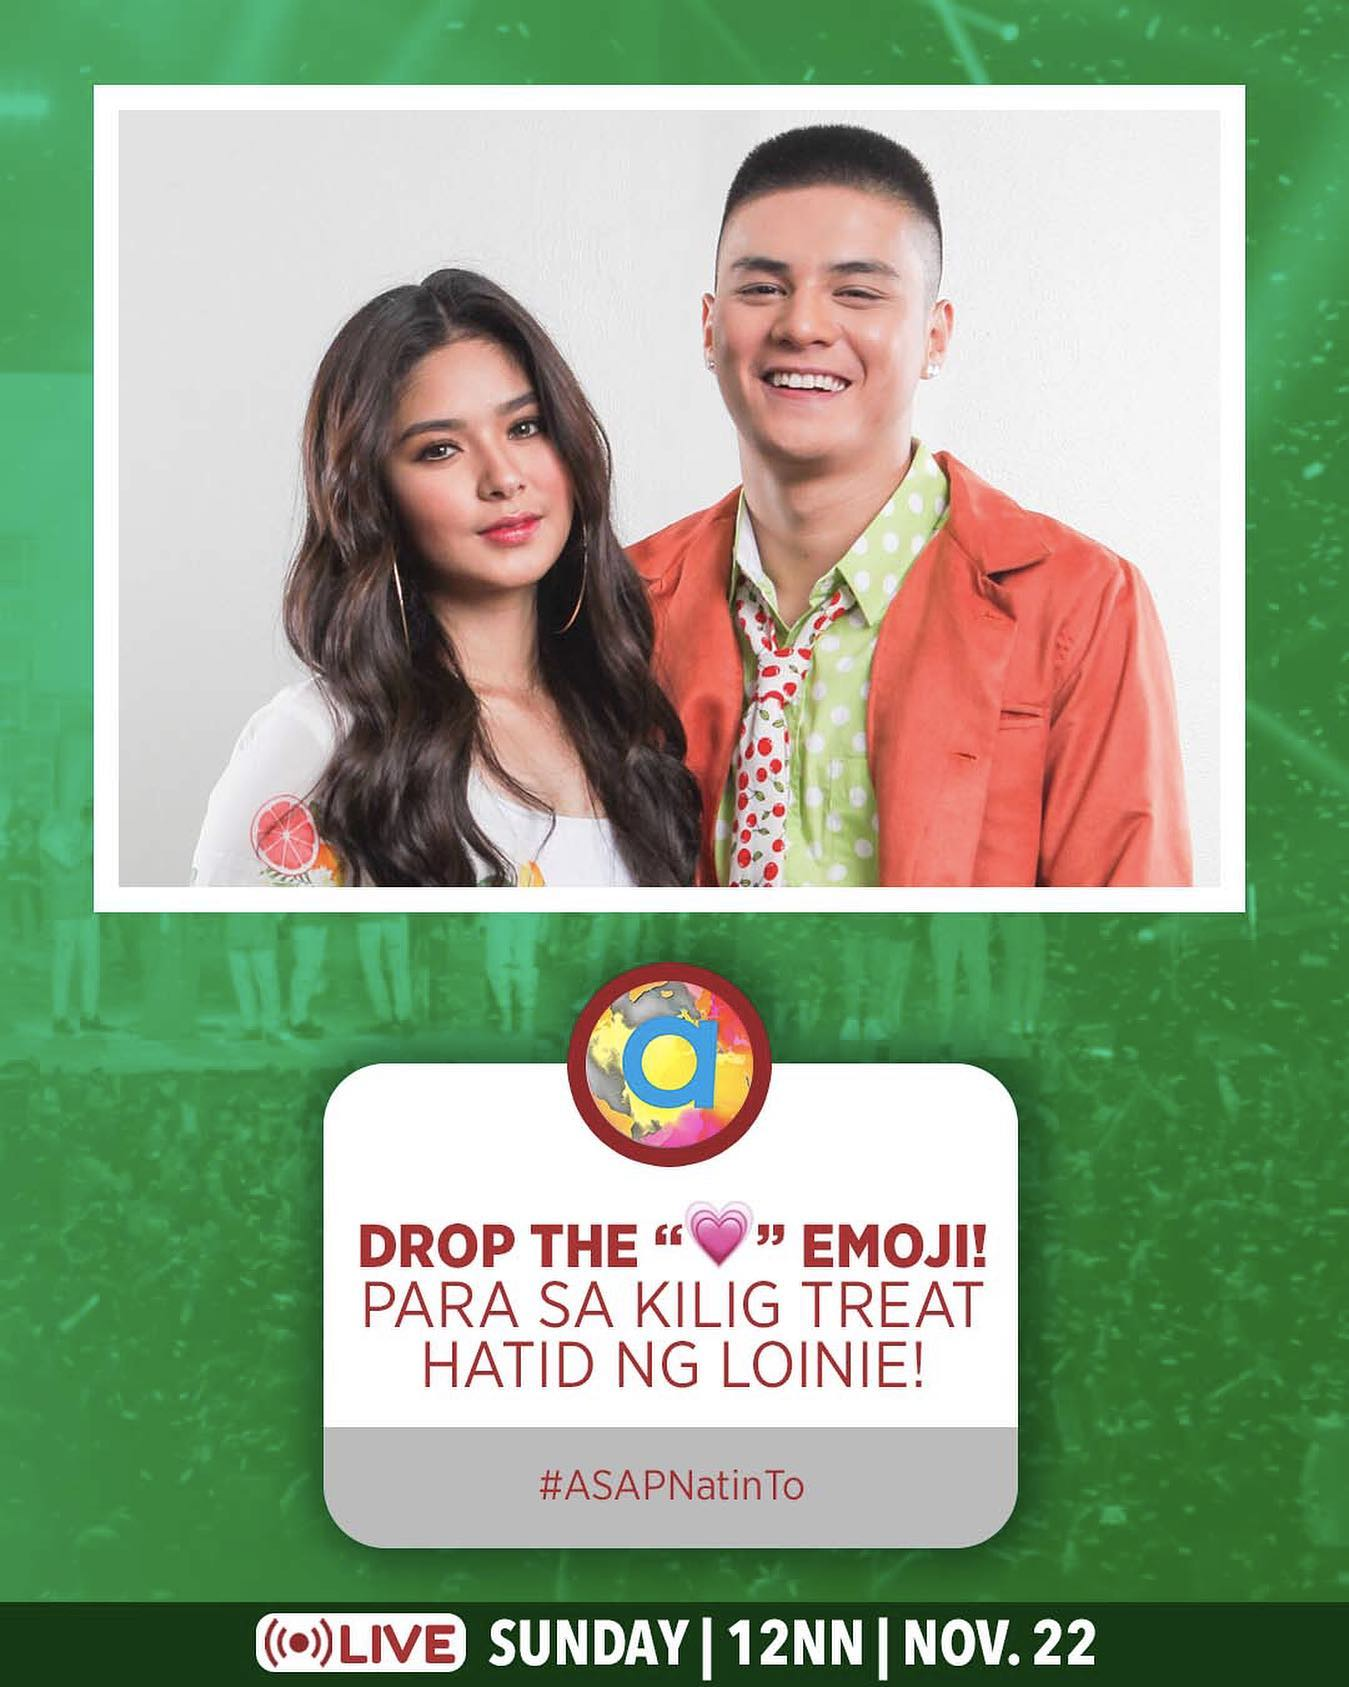 ASAP Natin To spreads the positivity with world class performances this Sunday 2